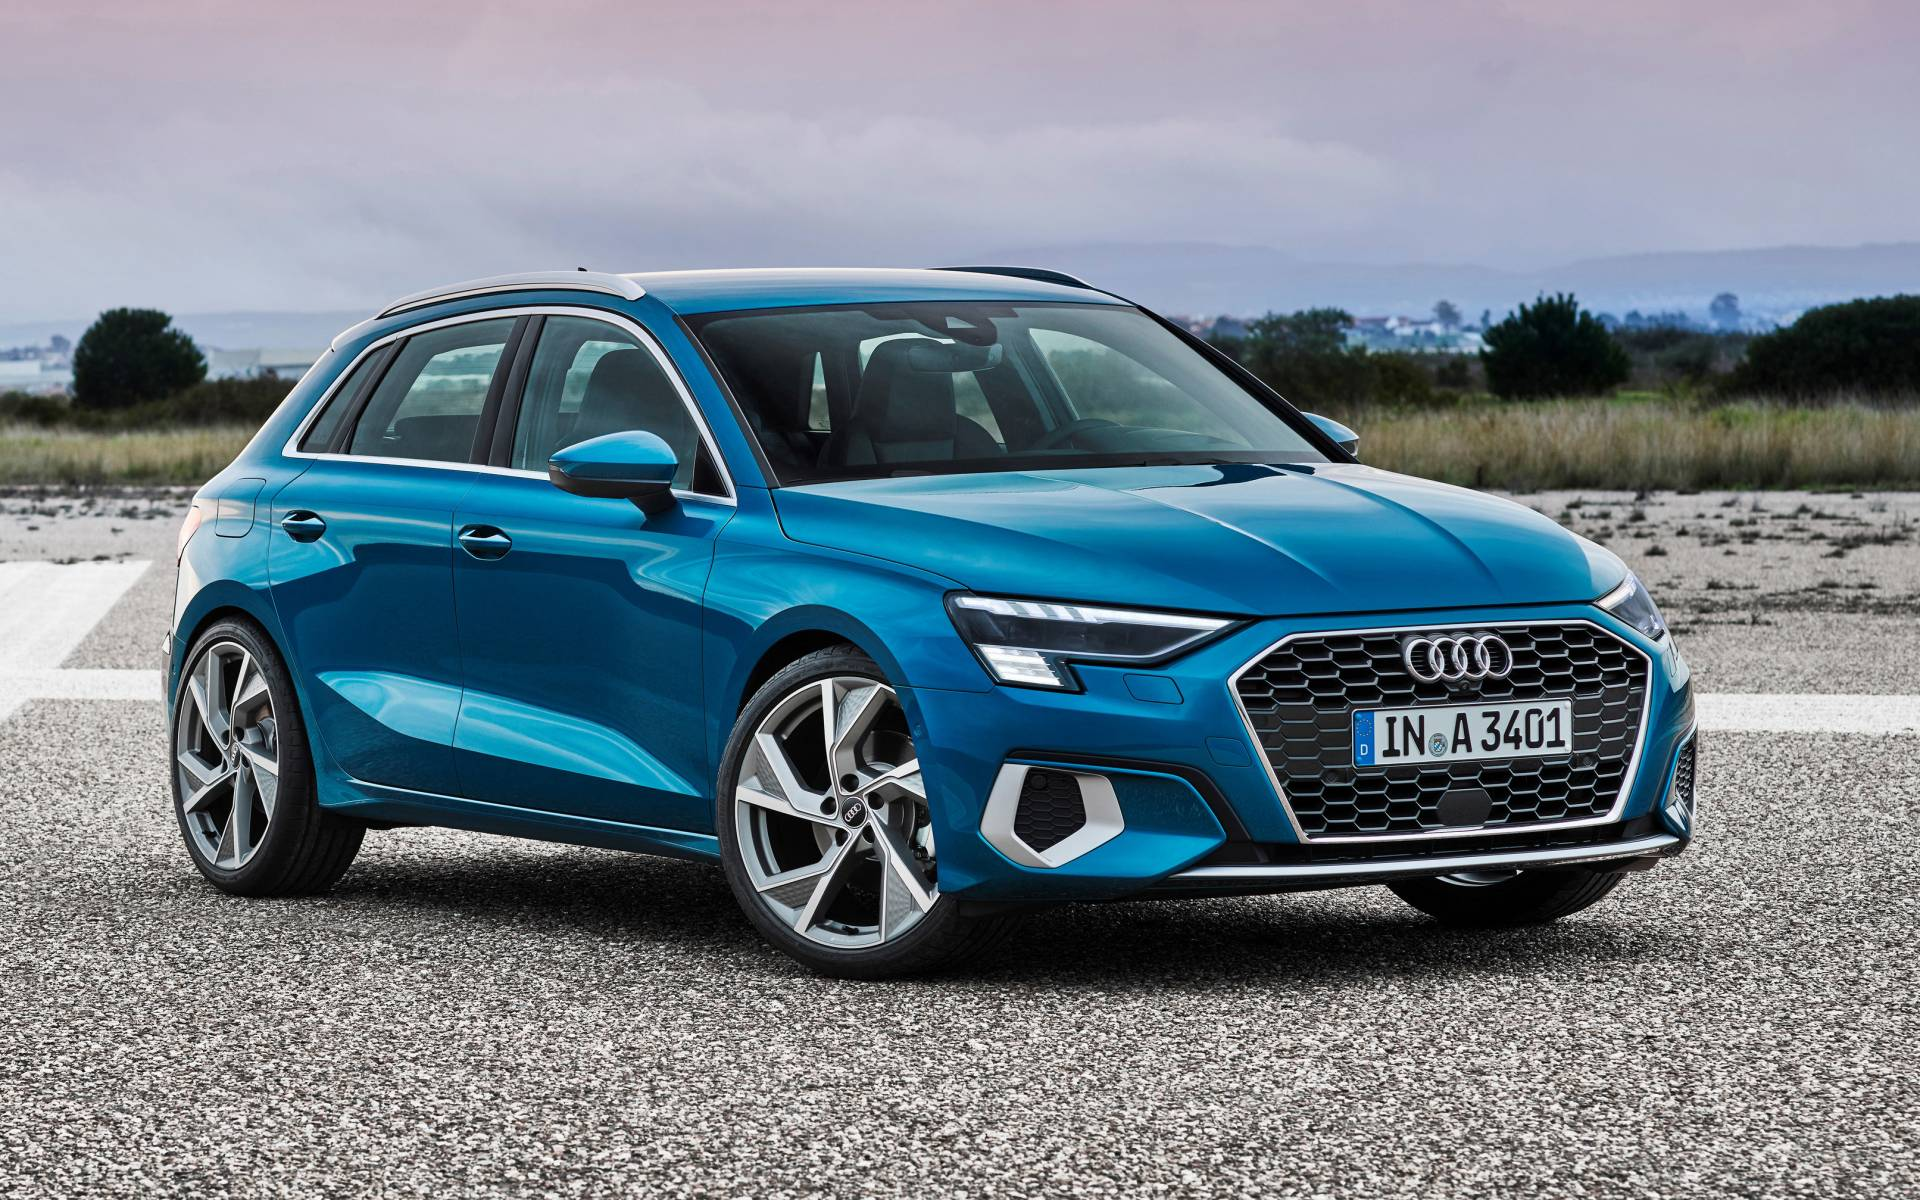 Redesigned Audi A4 Looks Extremely Sharp for 4 - The Car Guide